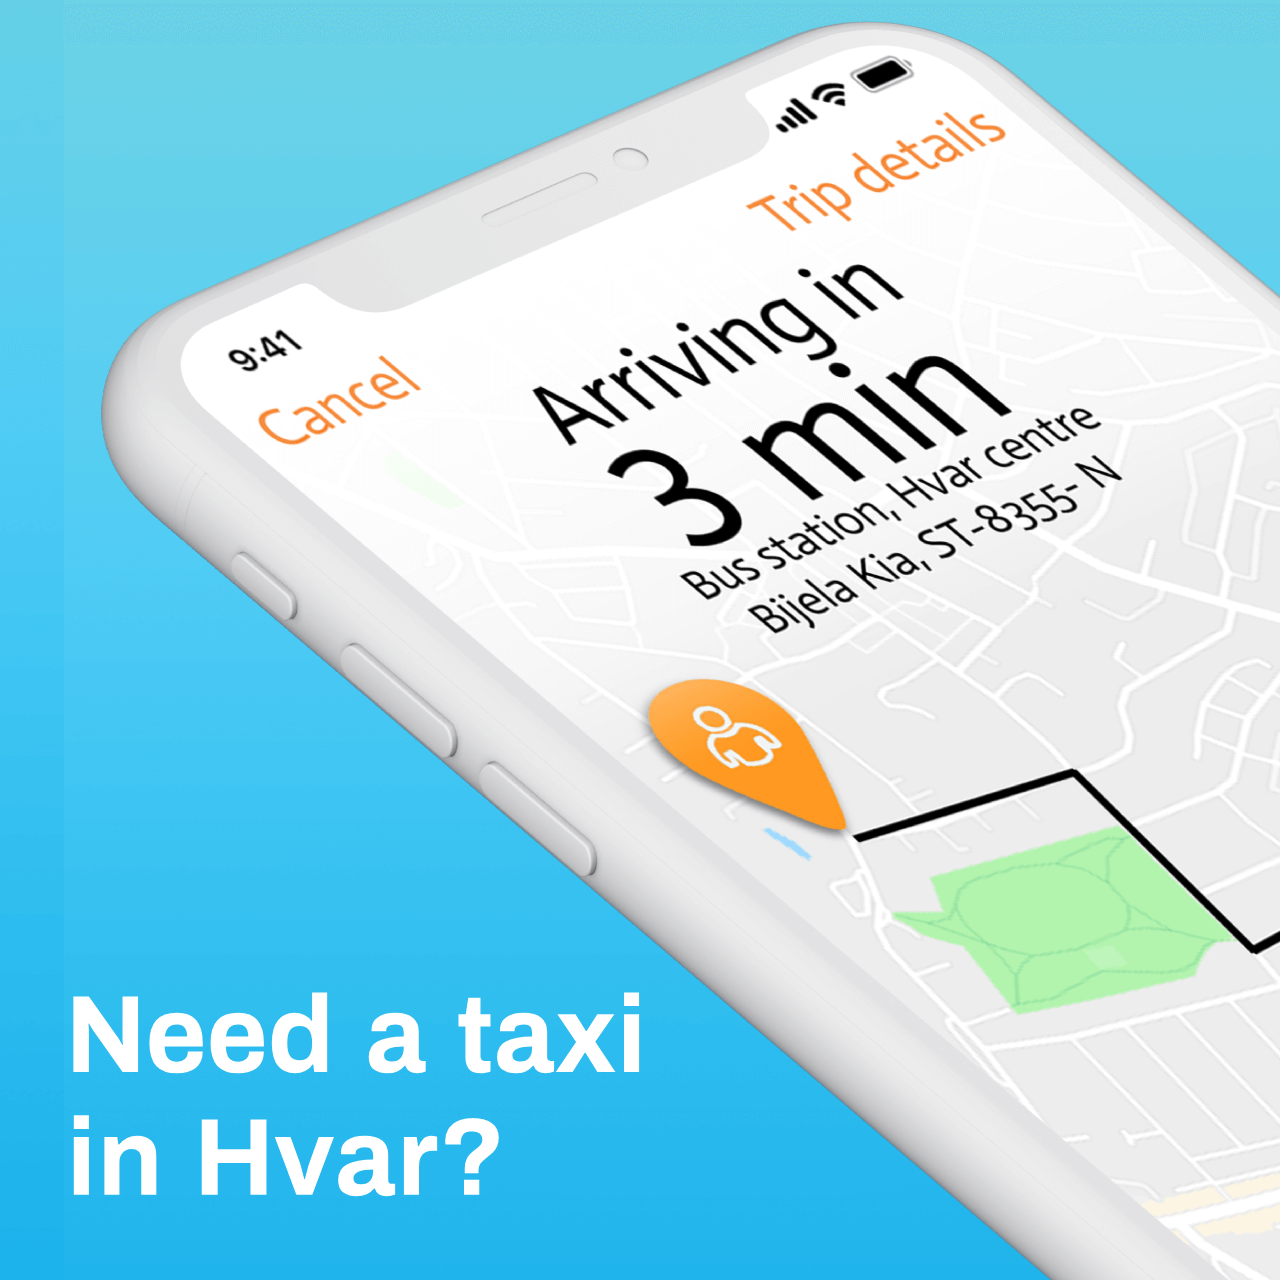 PickApp Hvar, a New Uber Style Taxi Option with Great Prices